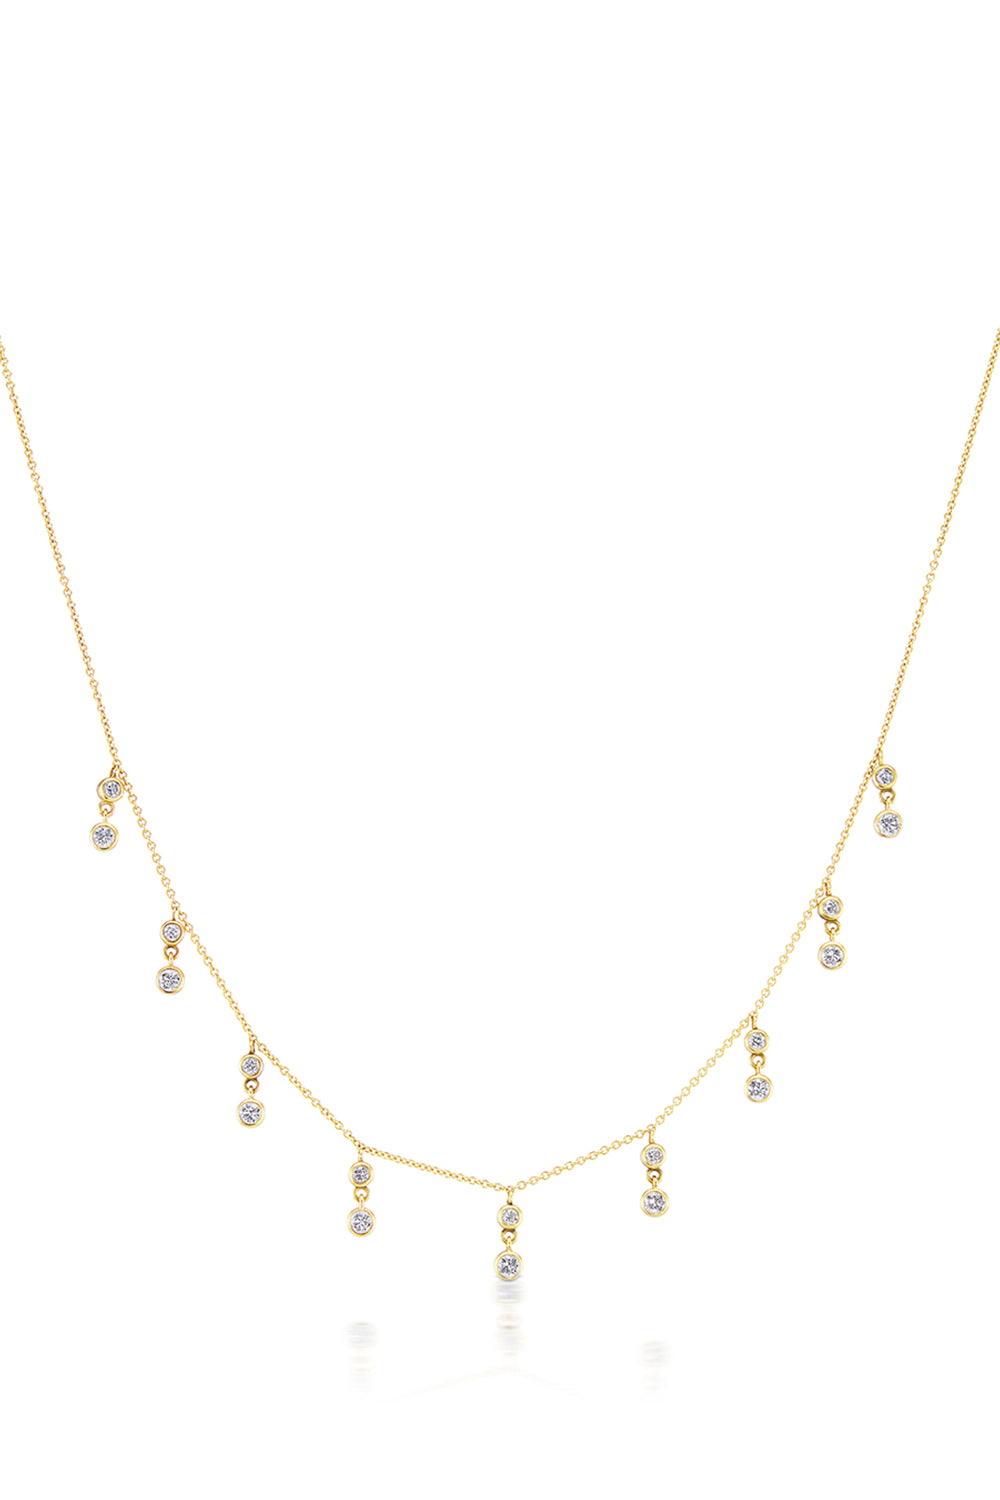 Cleopatra Necklace in Yellow Gold